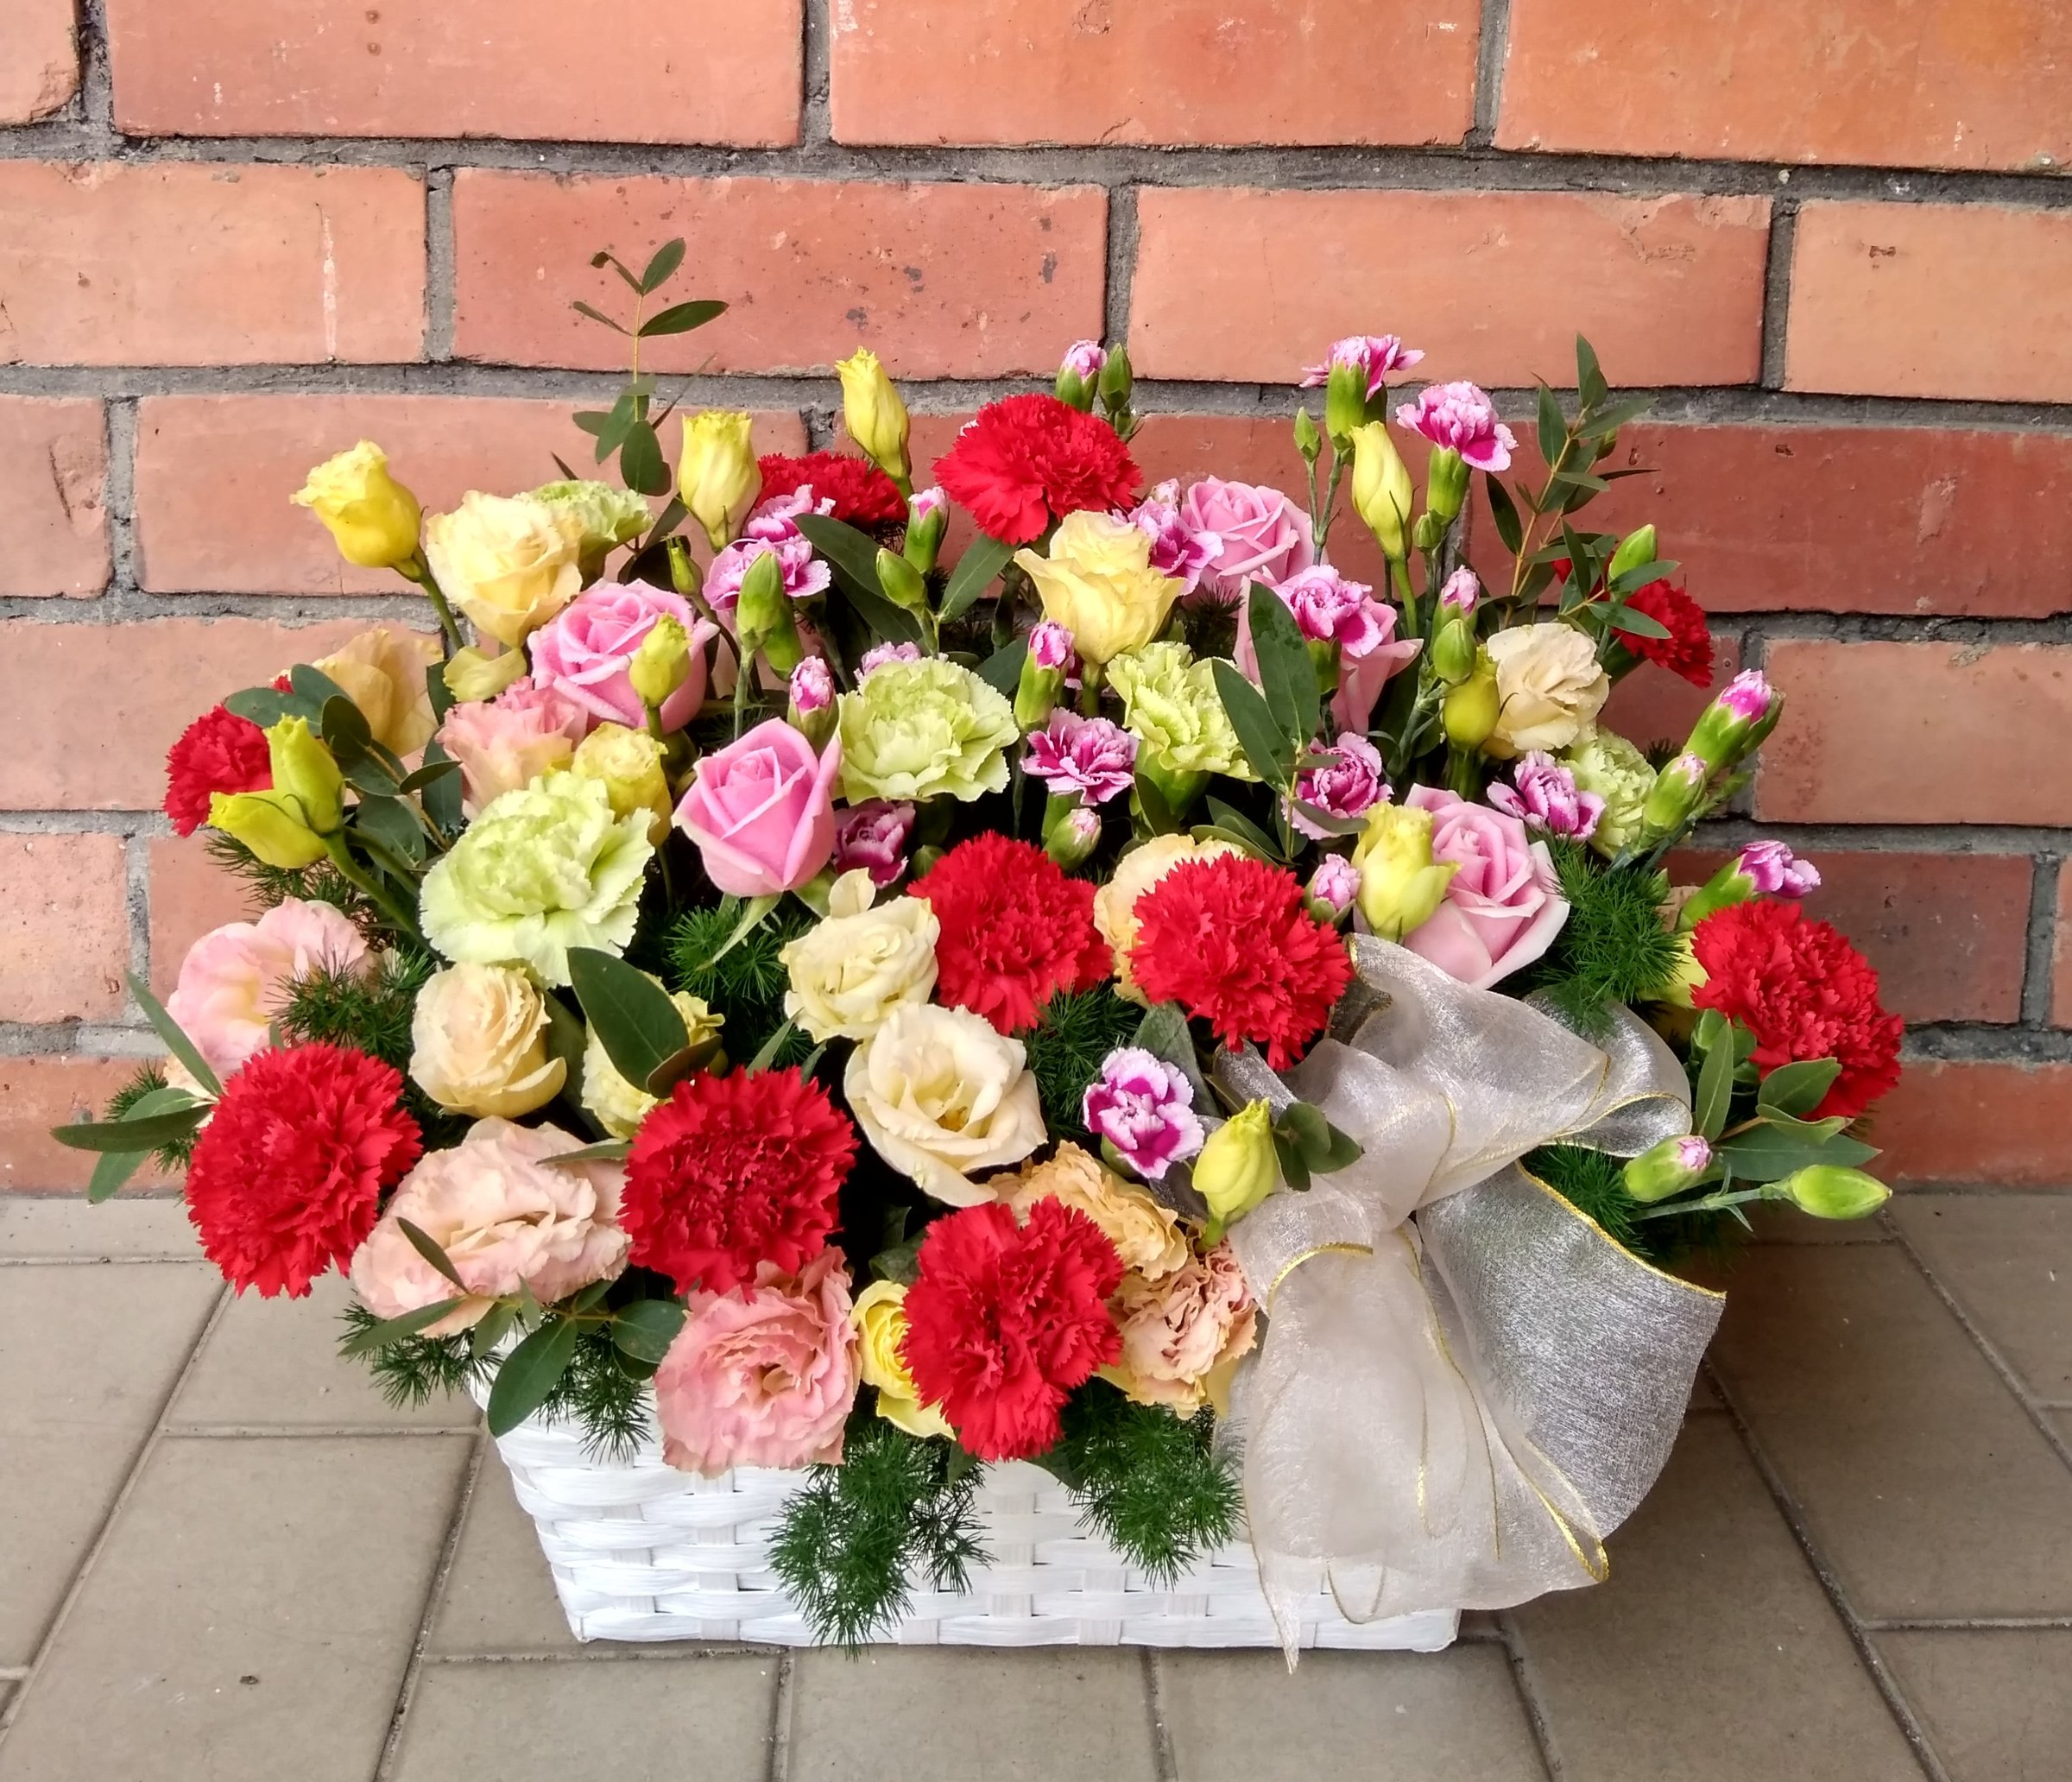 TA 28 - Malaysia online florist delivering fresh flowers ...